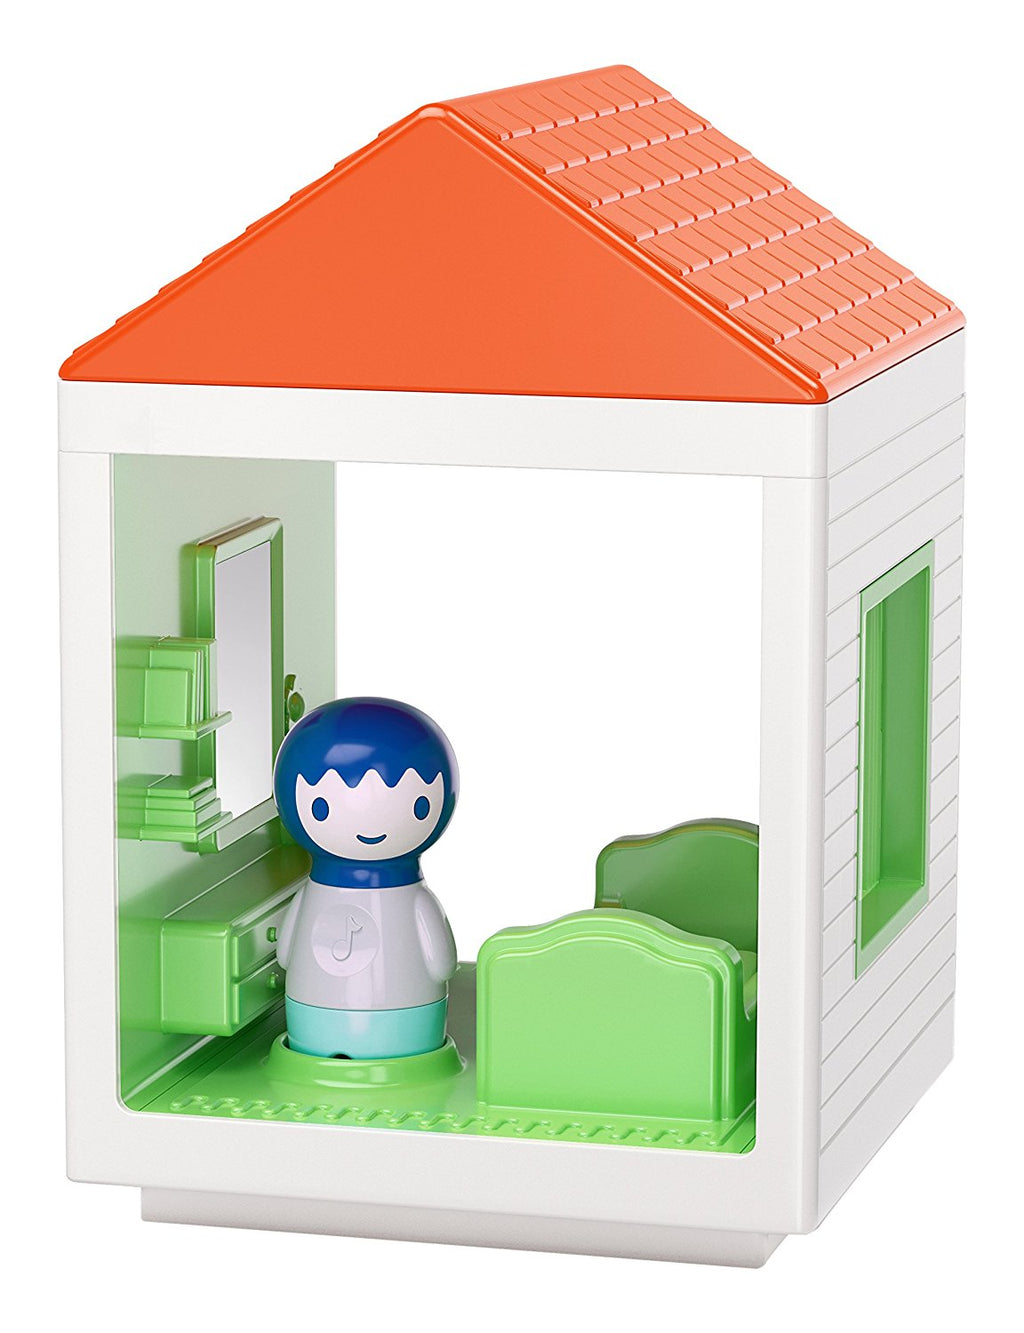 Myland™ Play House Sleeping - The Rollie Pollie